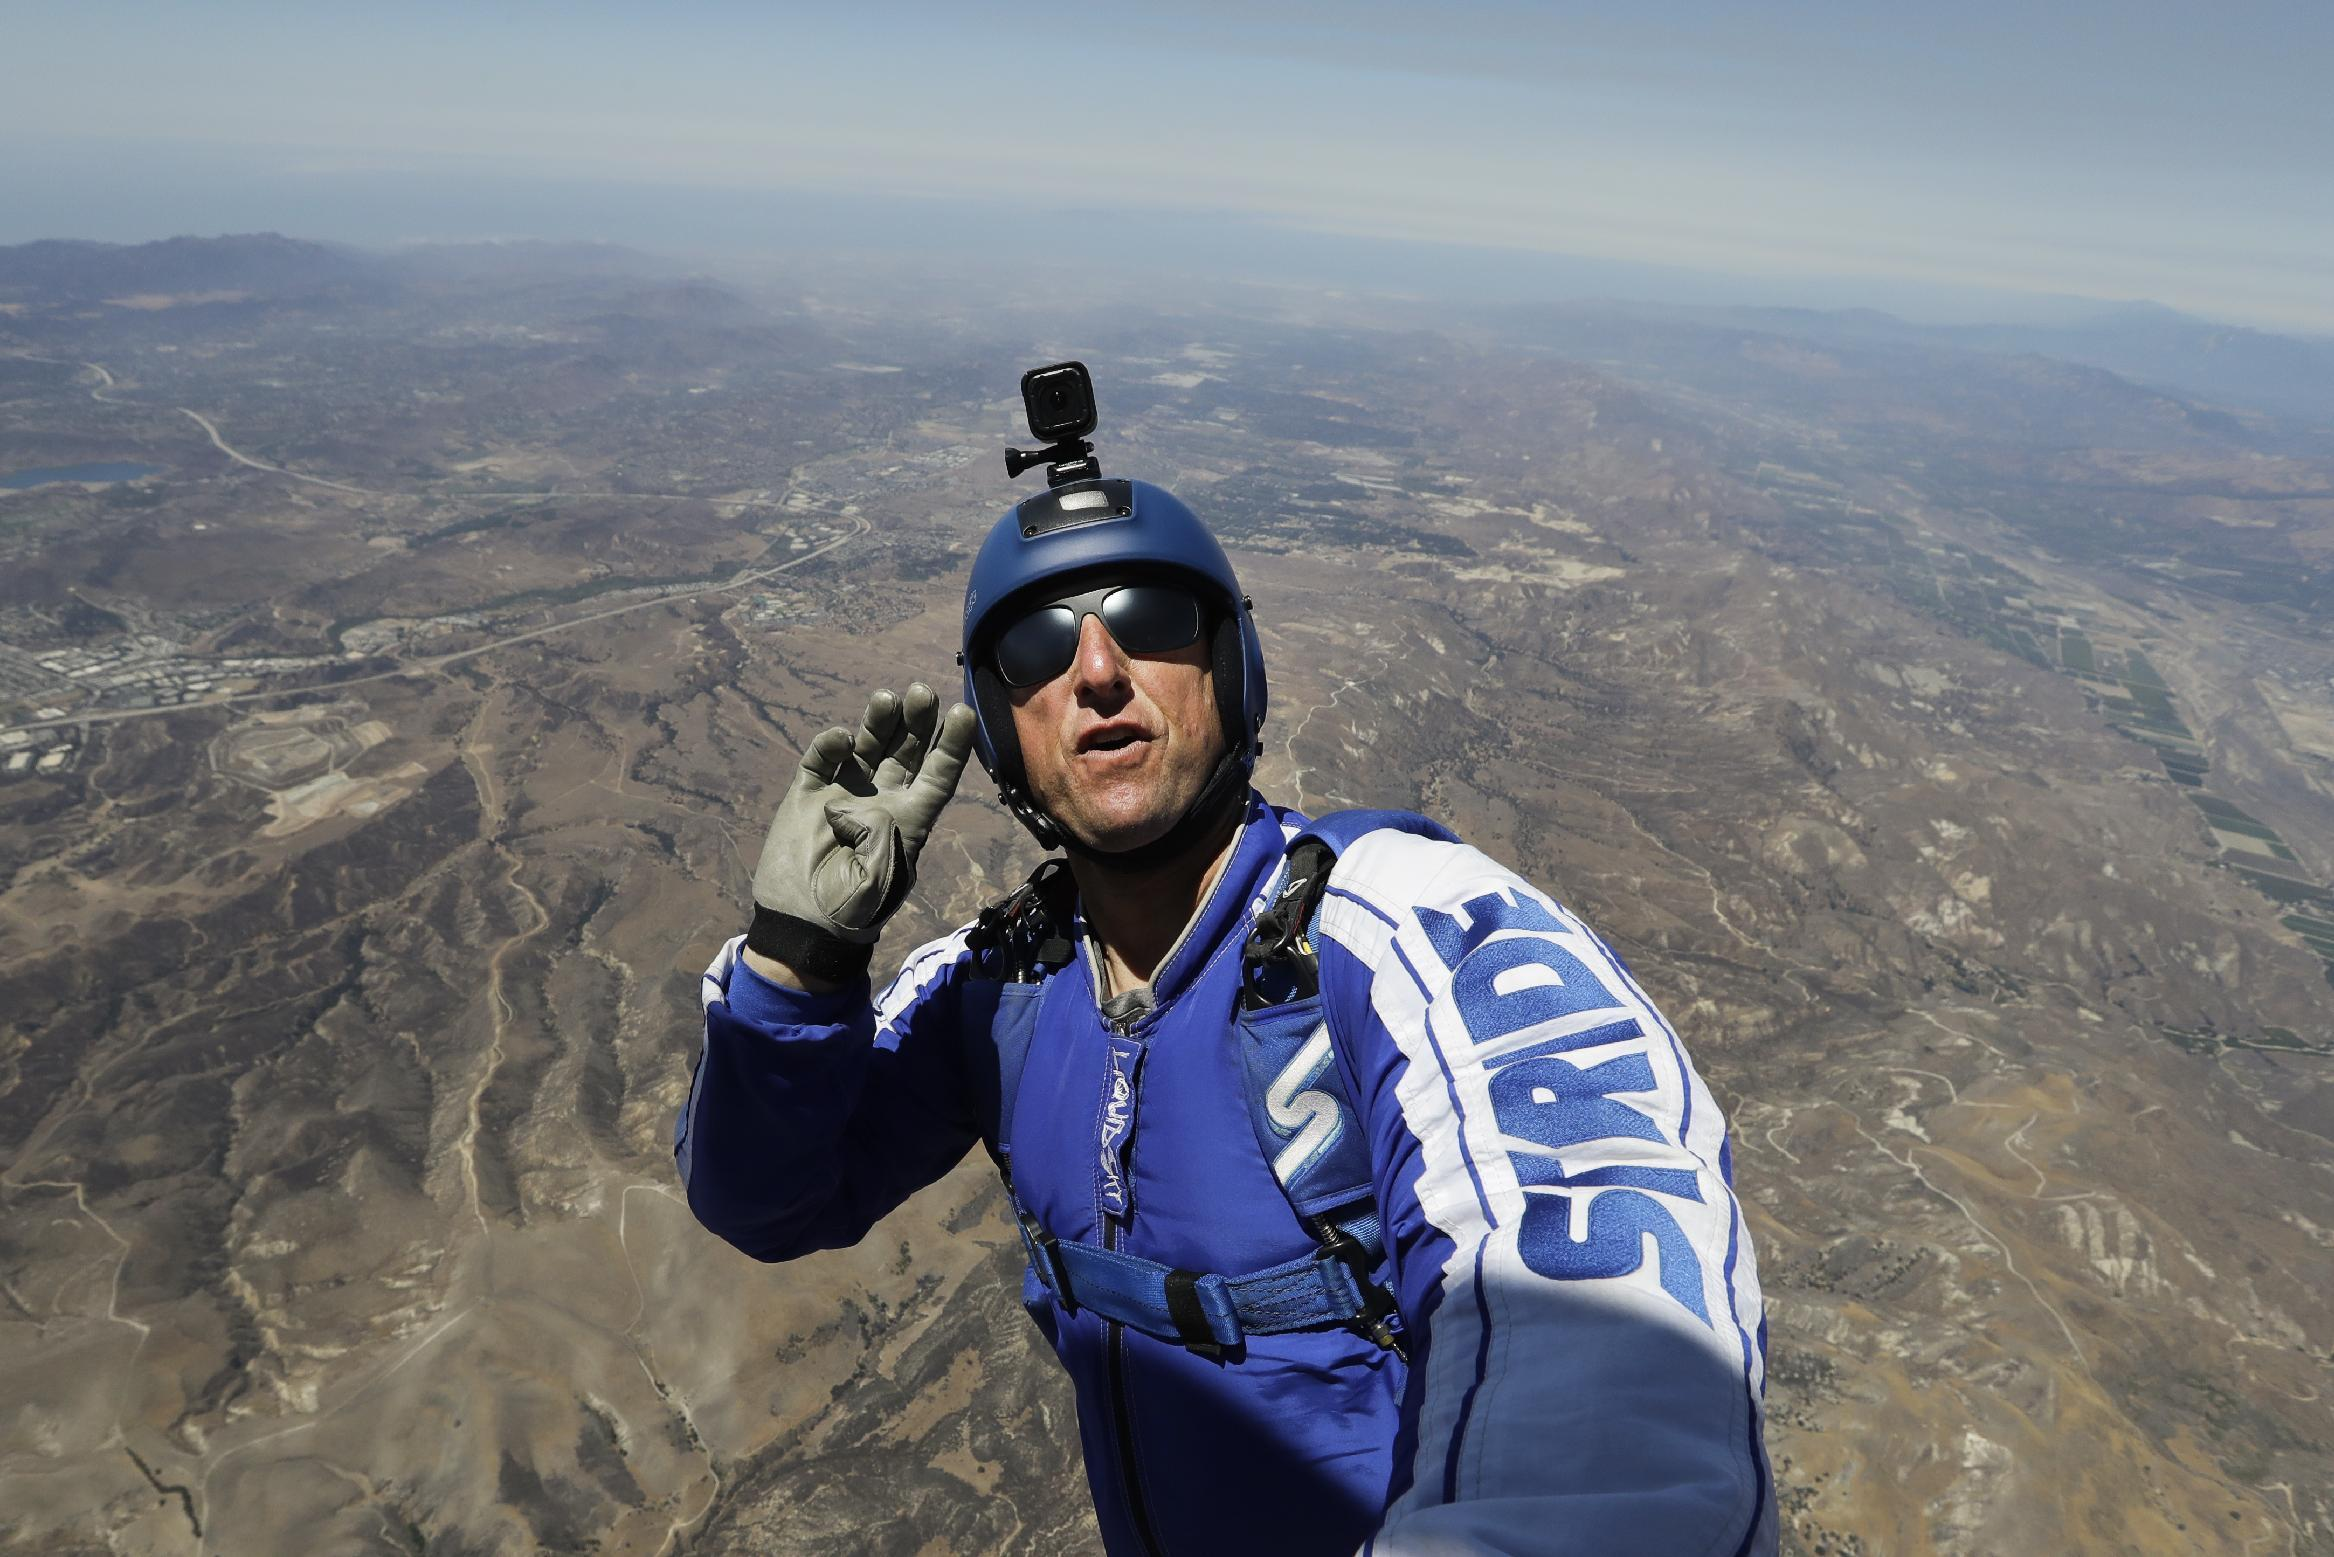 Skydiver becomes first person to jump and land without chute